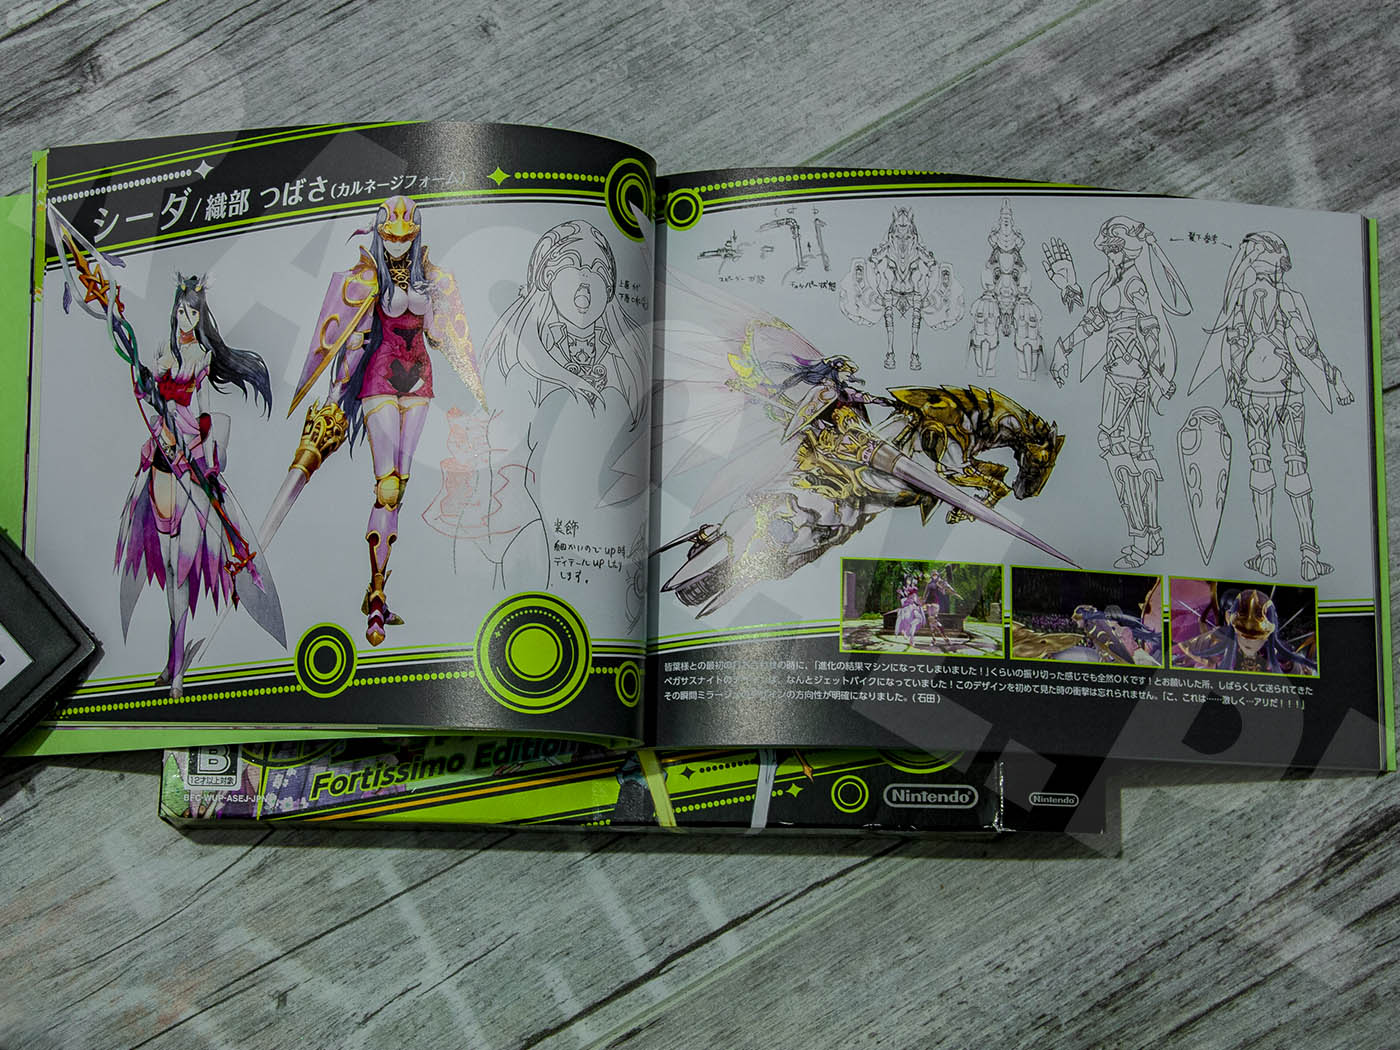 Tokyo Mirage Sessions #FE Fortissimo Edition 2015 - Artbook - Caeda